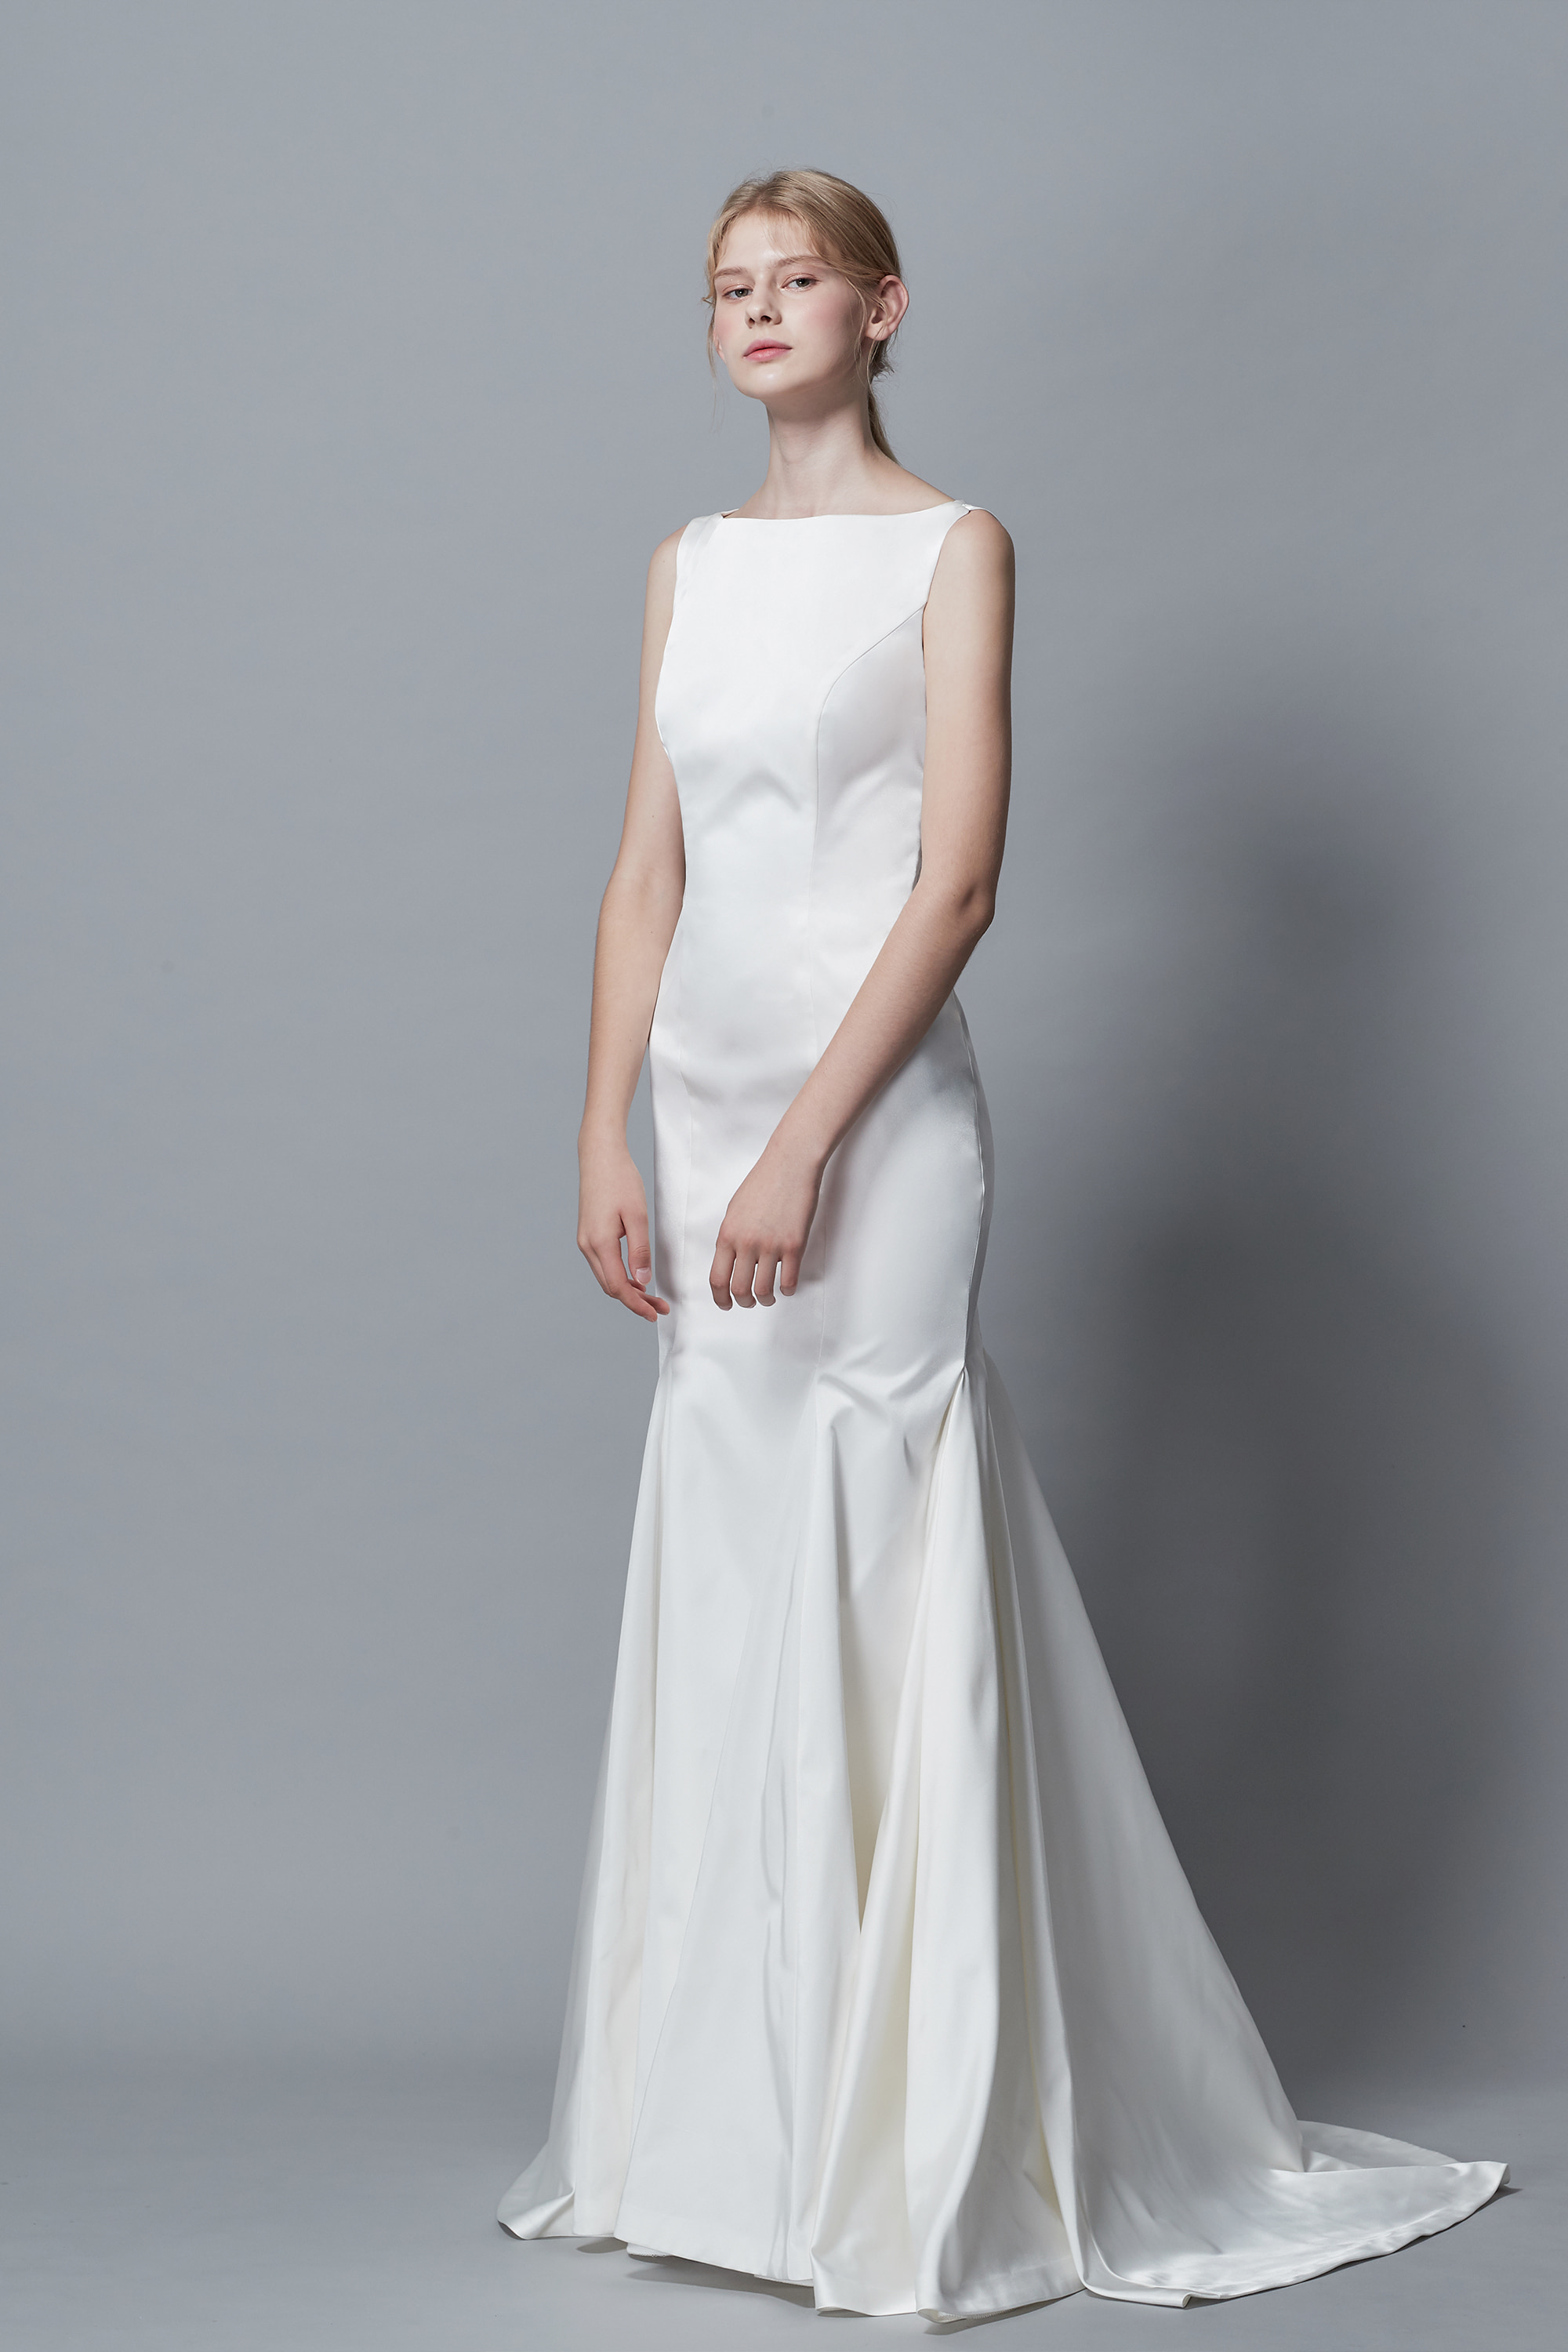 Ciel Blanc Bridal (CL Bridal), CL BRIDAL, MERMAID WEDDIGN DRESS, TAFFETA, BOAT NECK